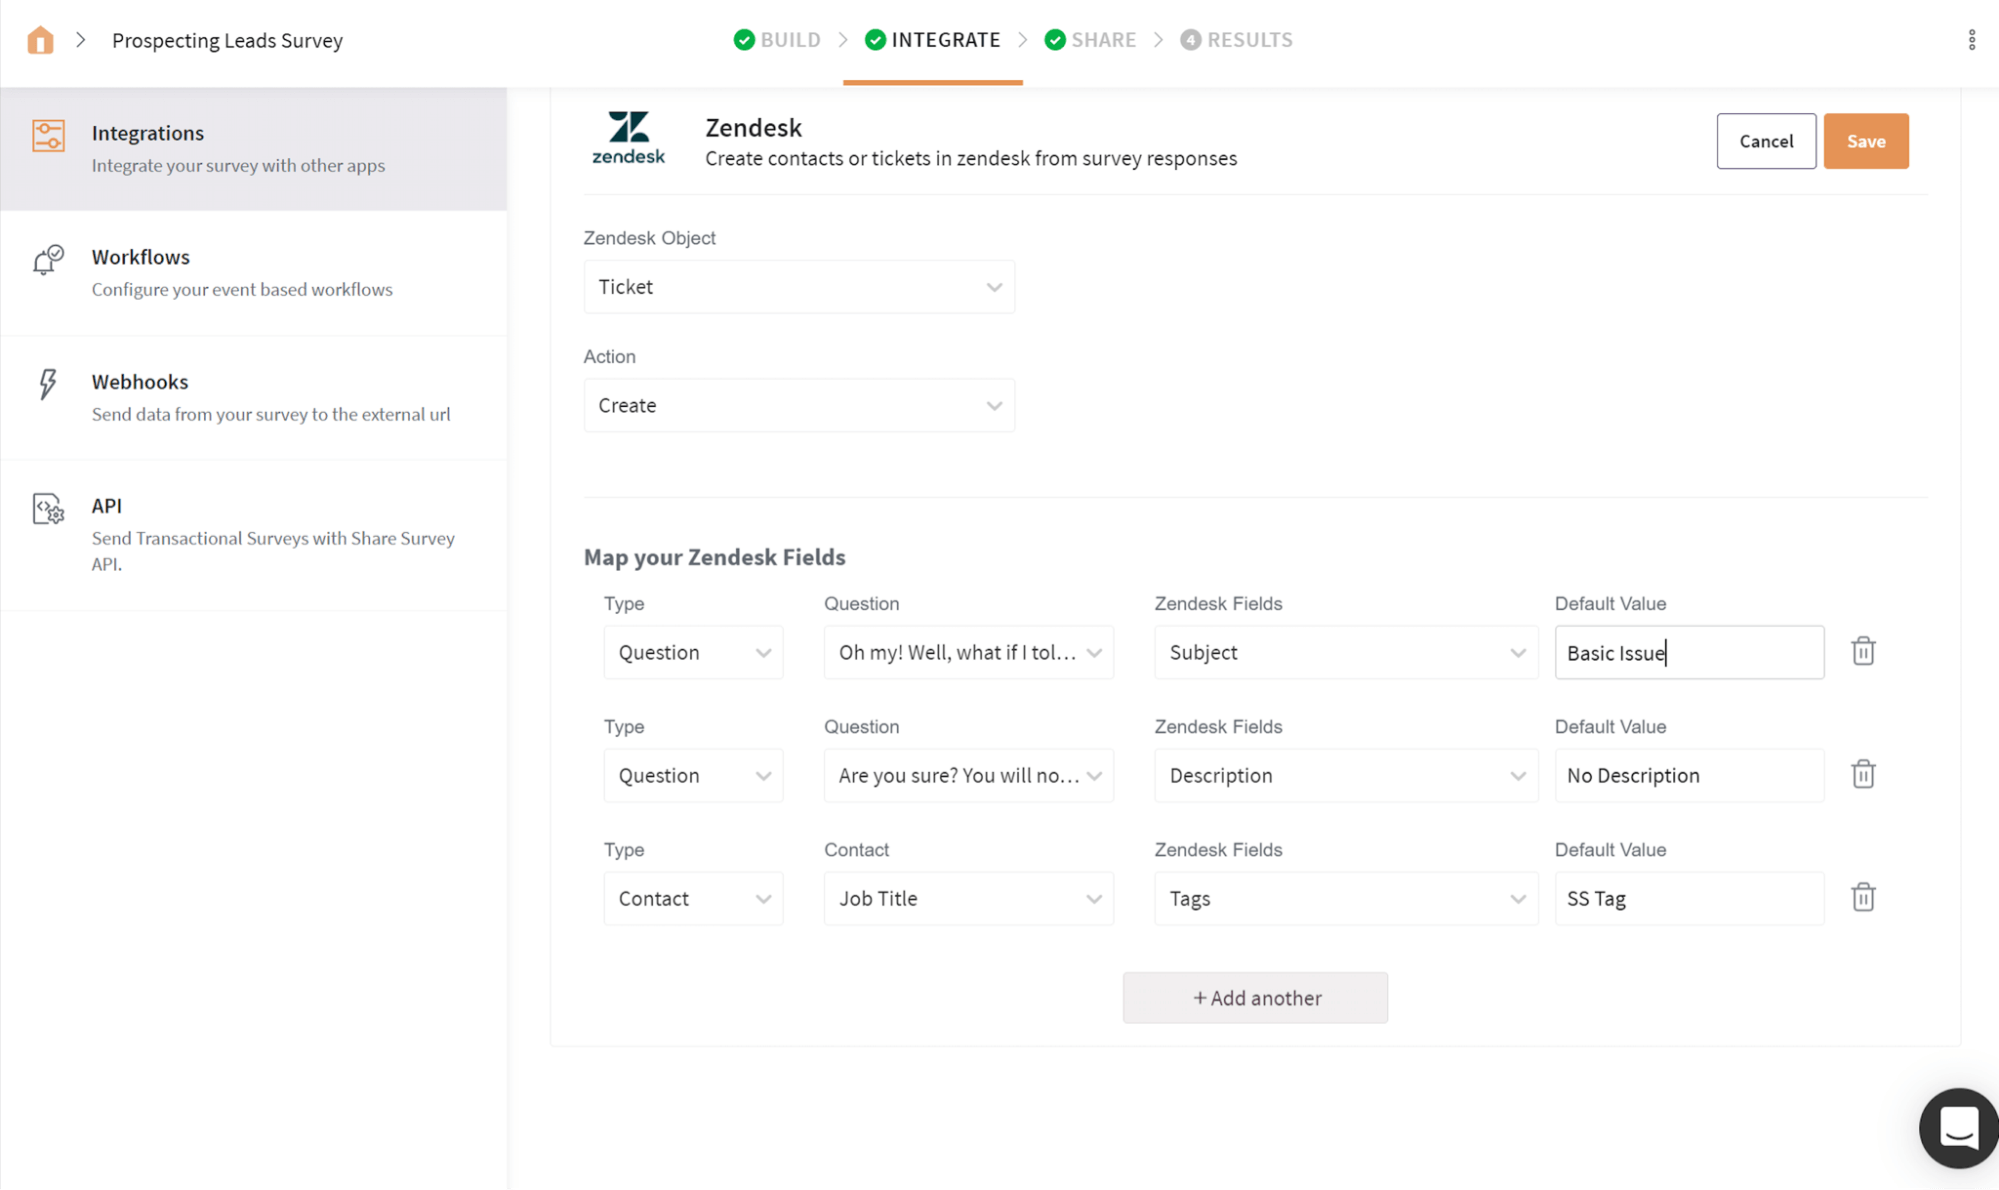 Create new tickets on Zendesk in real-time